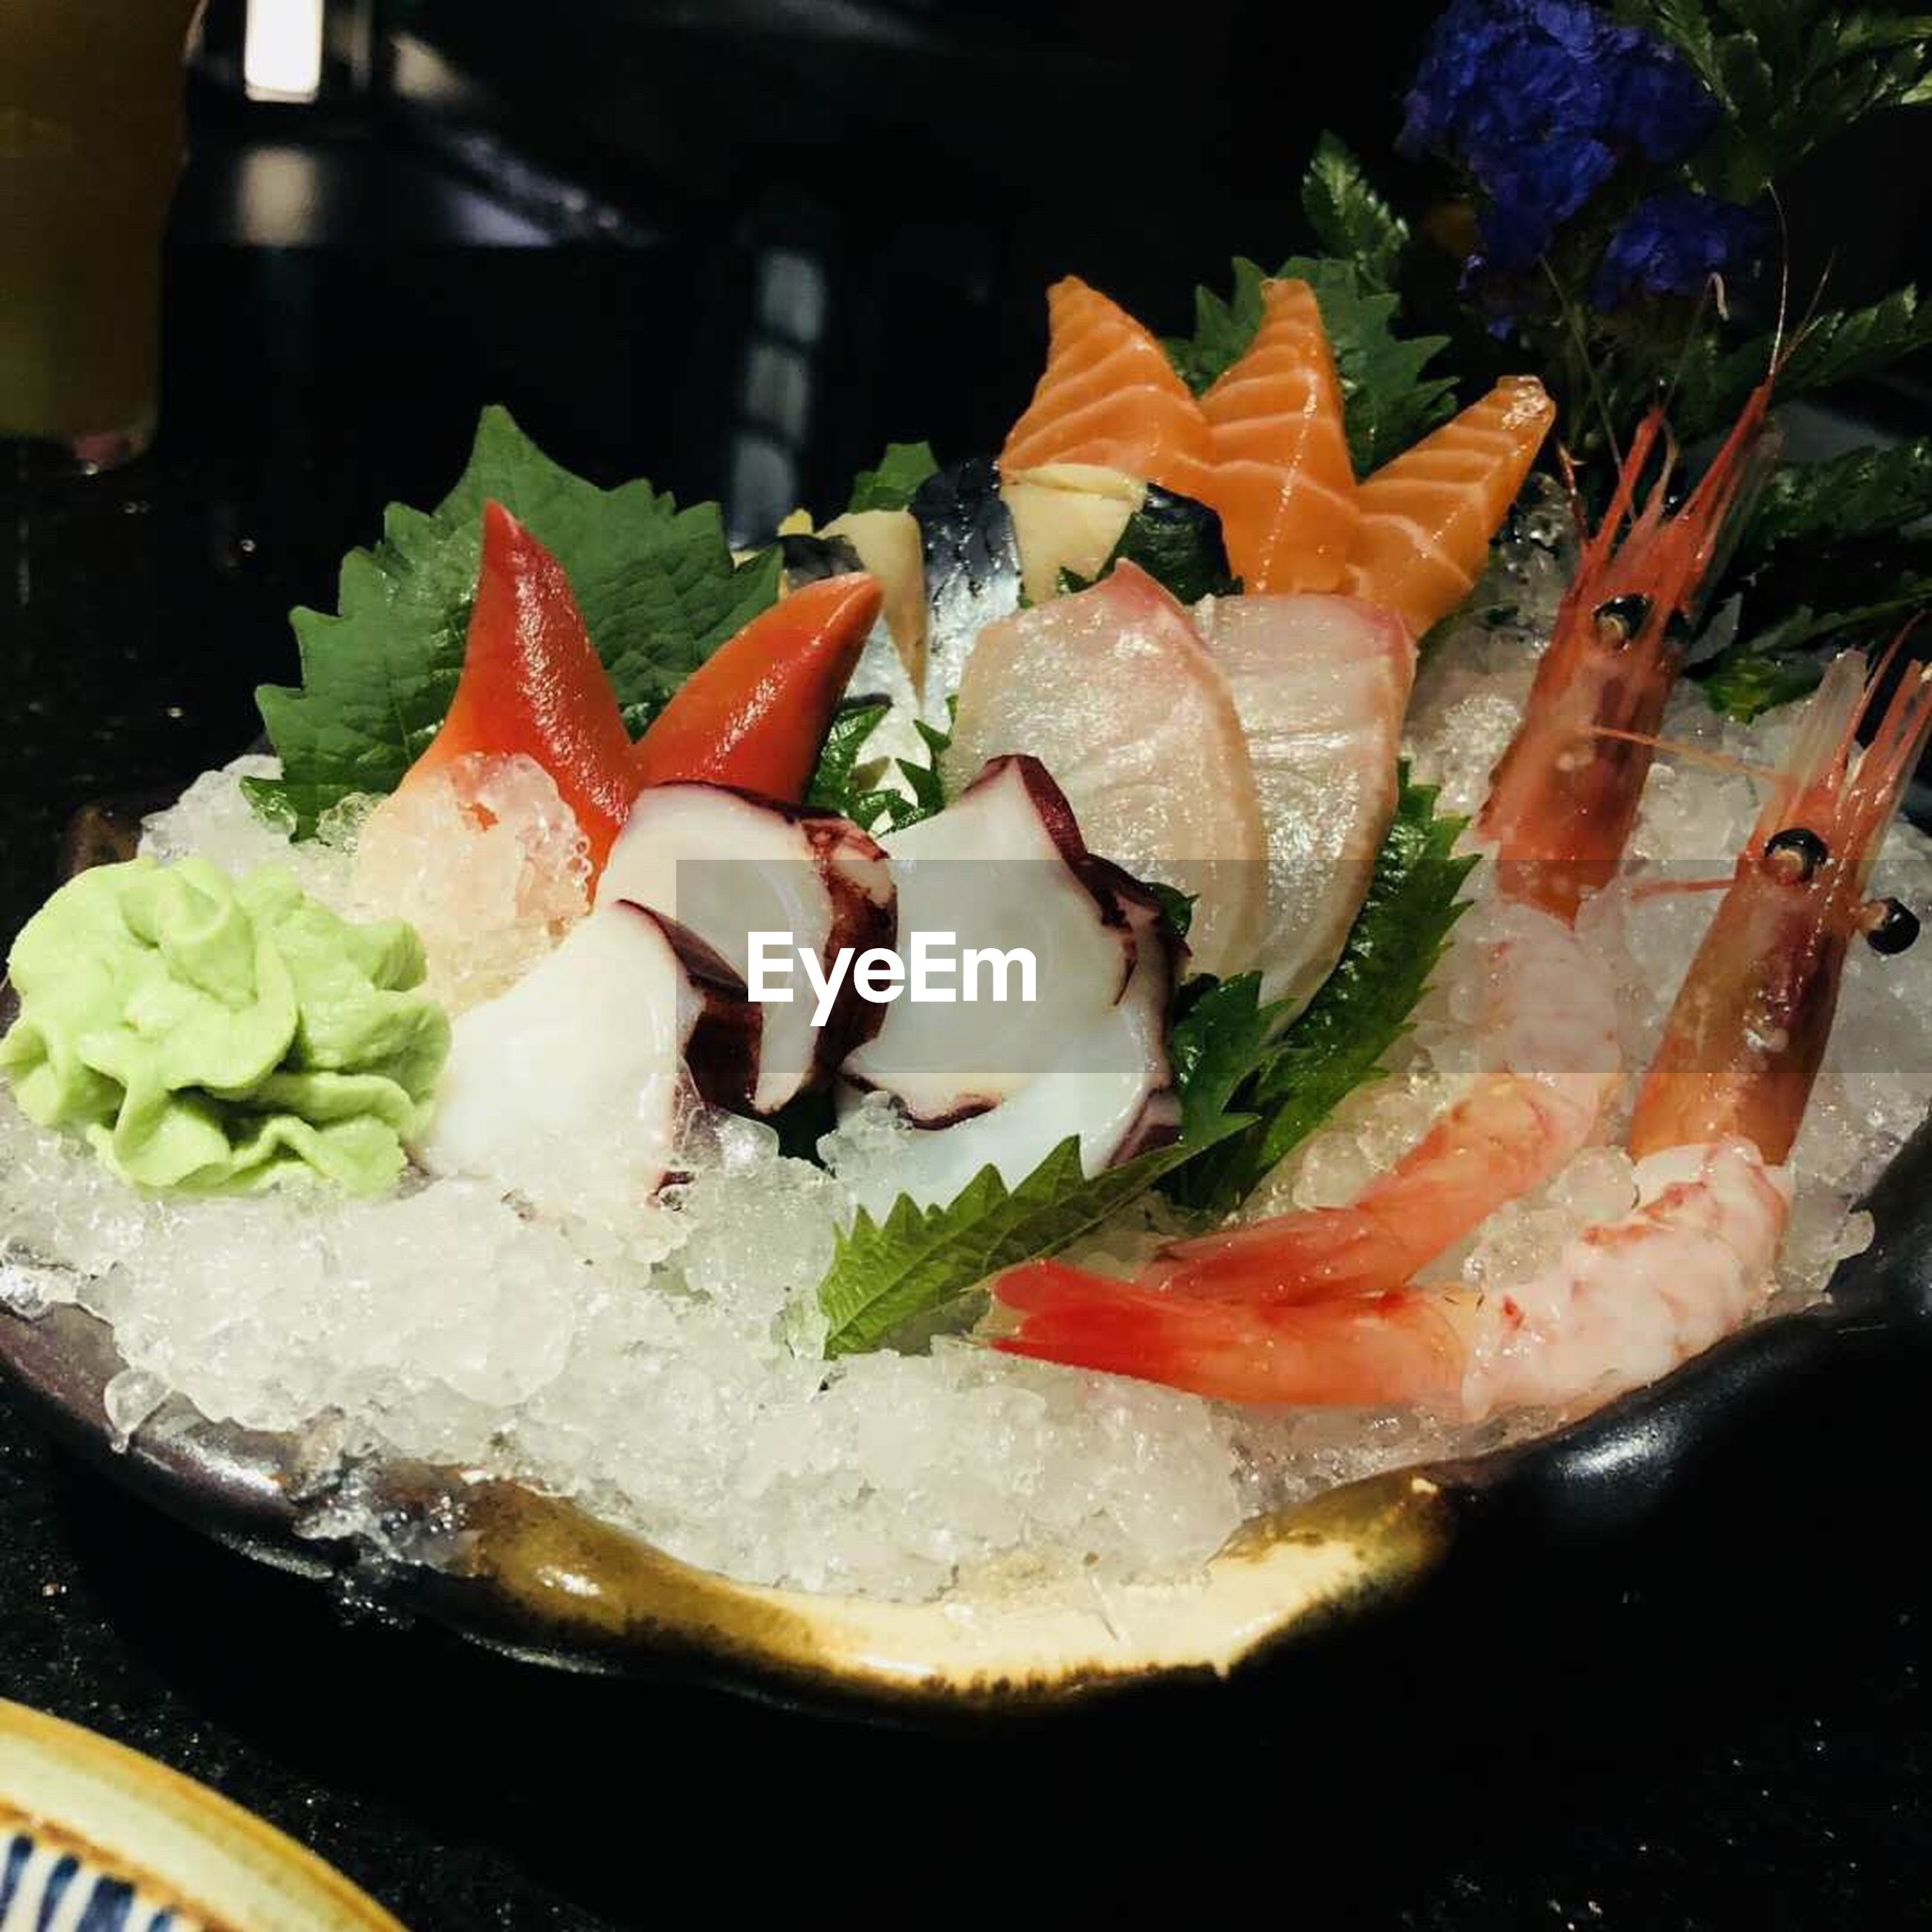 food, food and drink, freshness, ready-to-eat, healthy eating, wellbeing, indoors, close-up, plate, still life, serving size, vegetable, seafood, no people, fish, indulgence, meat, slice, fruit, bread, japanese food, crockery, dinner, caviar